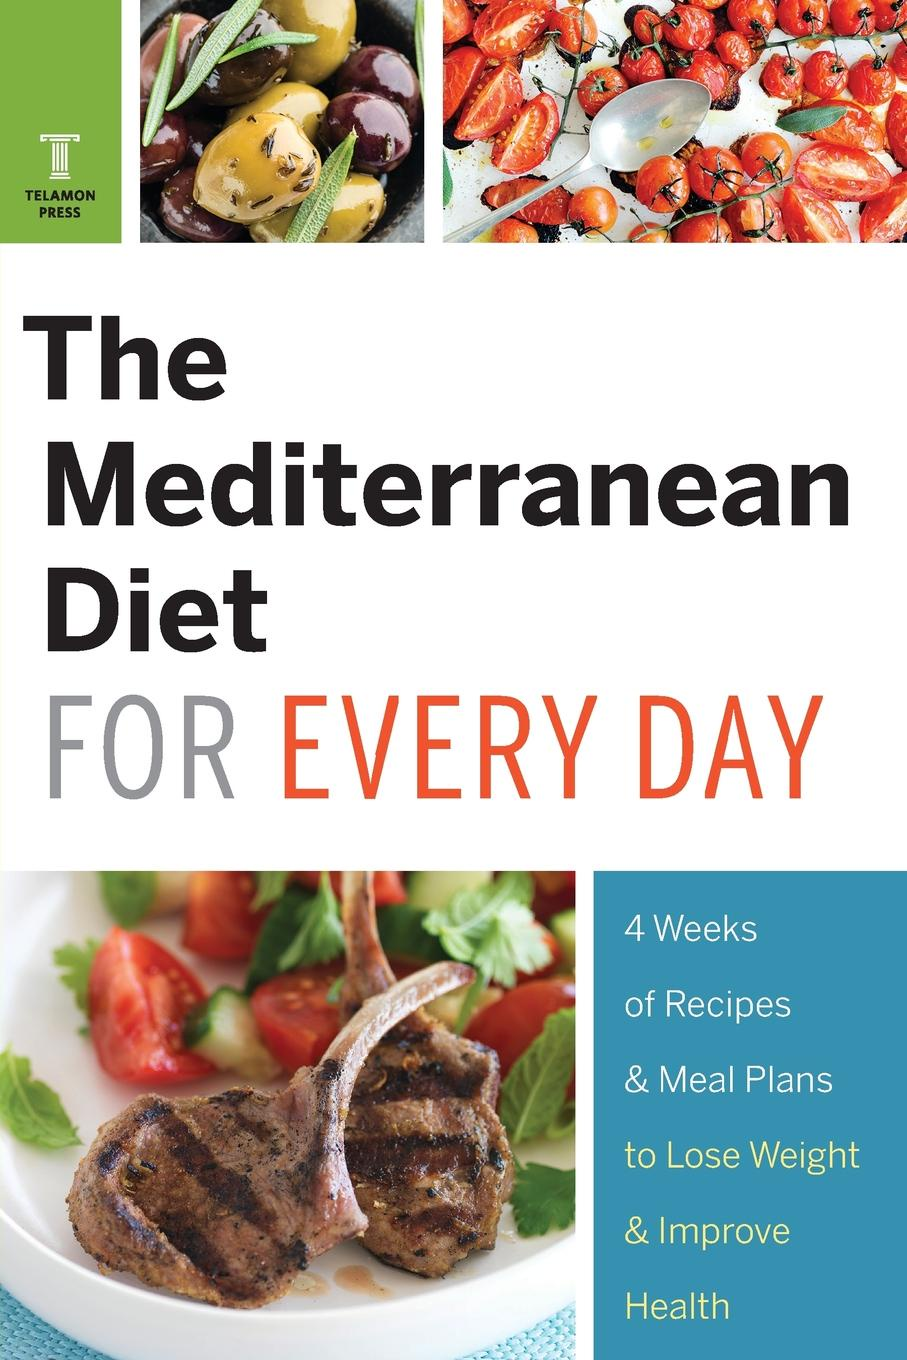 Telamon Press Mediterranean Diet for Every Day. 4 Weeks of Recipes . Meal Plans to Lose Weight